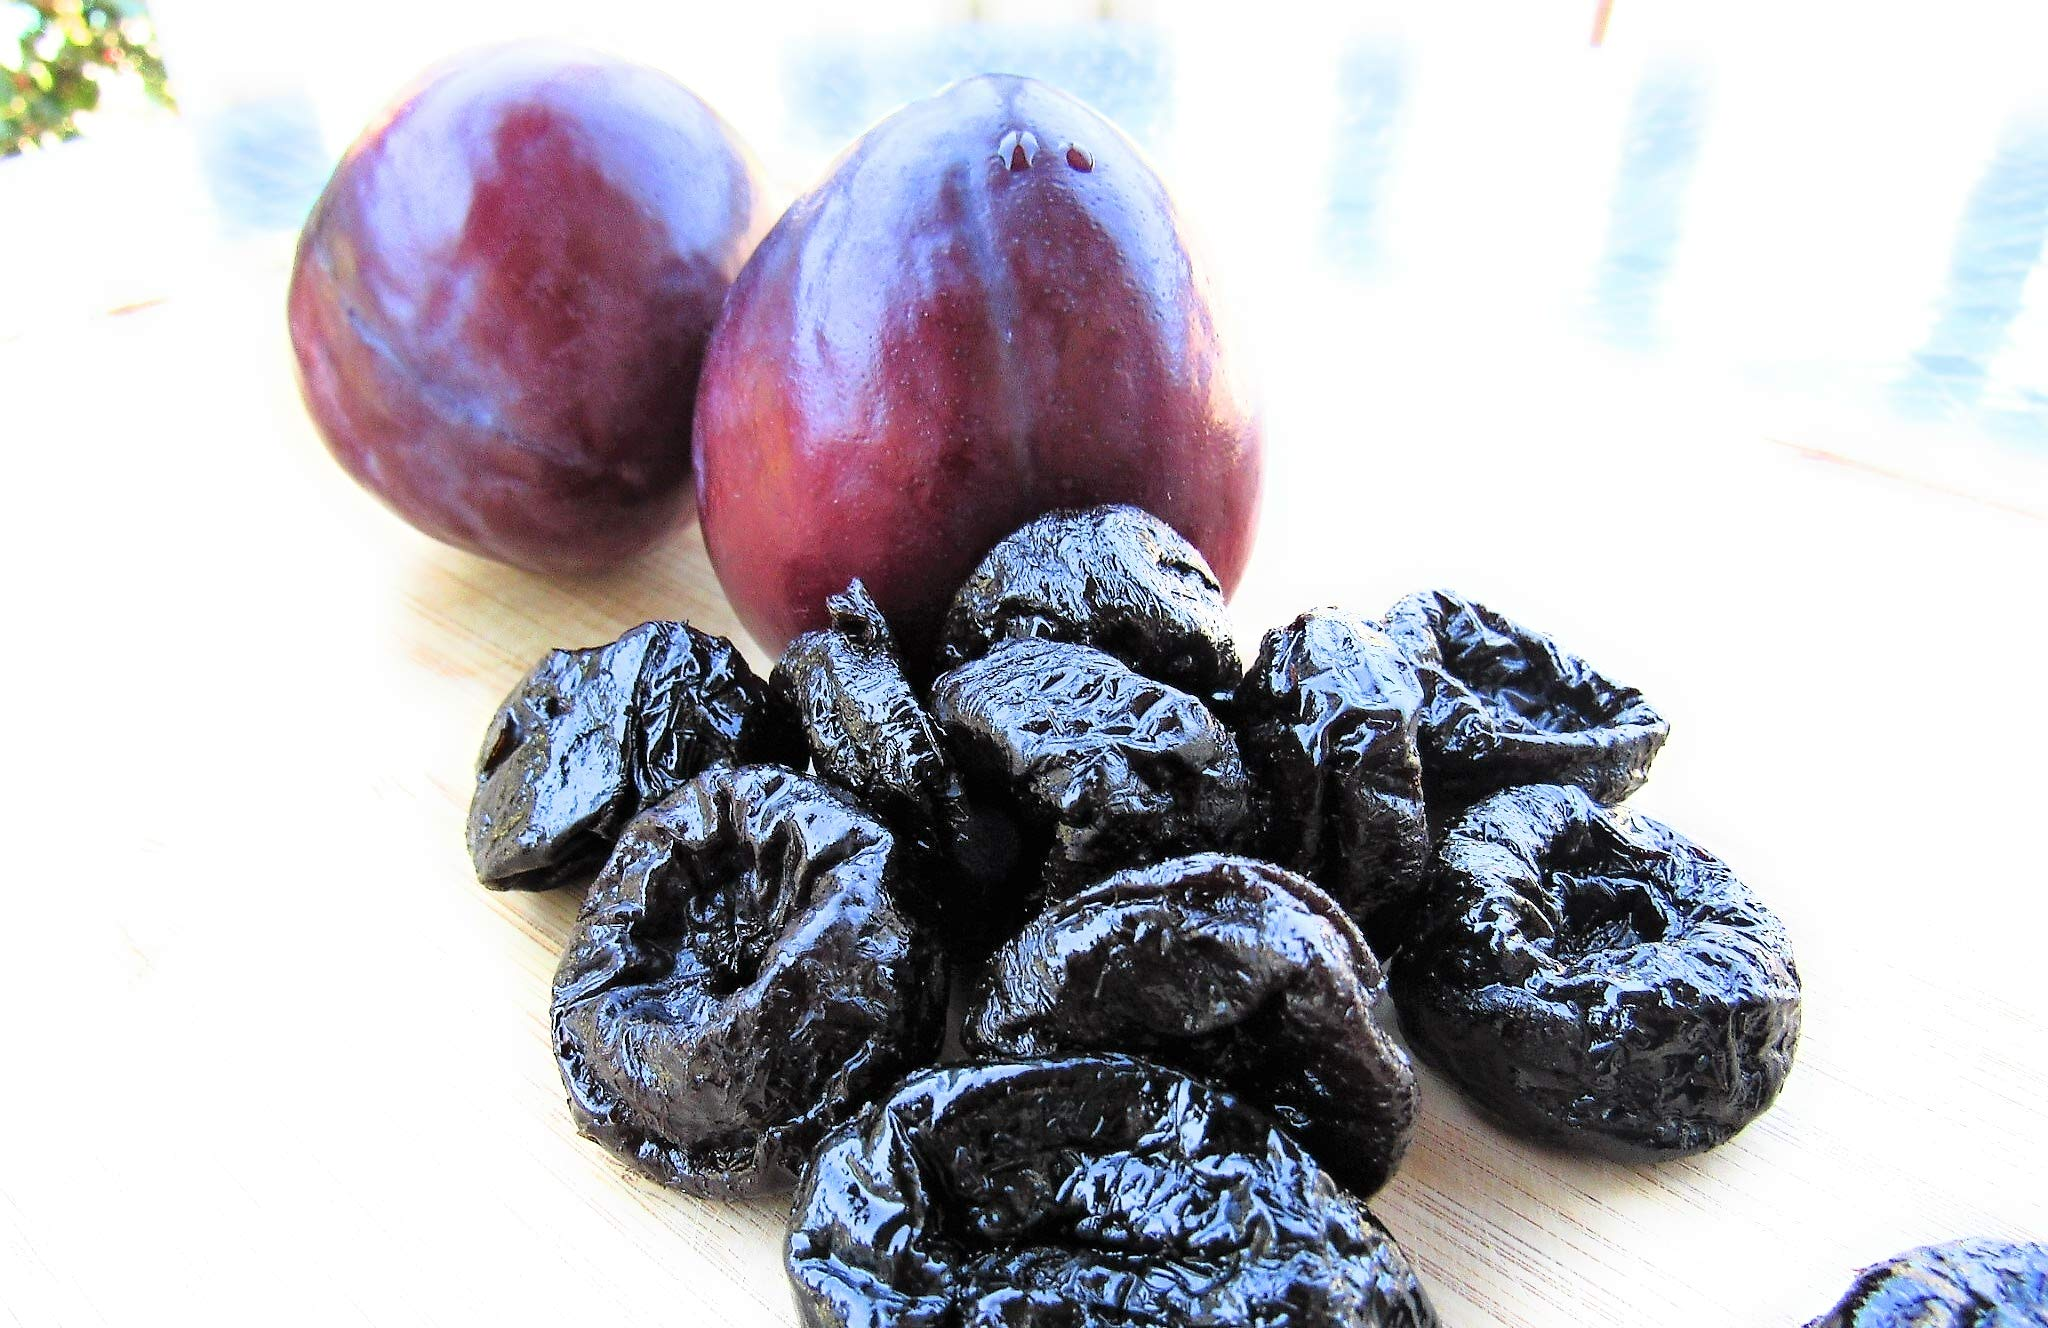 Prunes - Bulk Prunes In 25 Pound Boxes - Freshest and highest quality dried fruits from US Based farmer market - Quality dried fruits for homes, restaurants, and bakeries. (25 LBS)